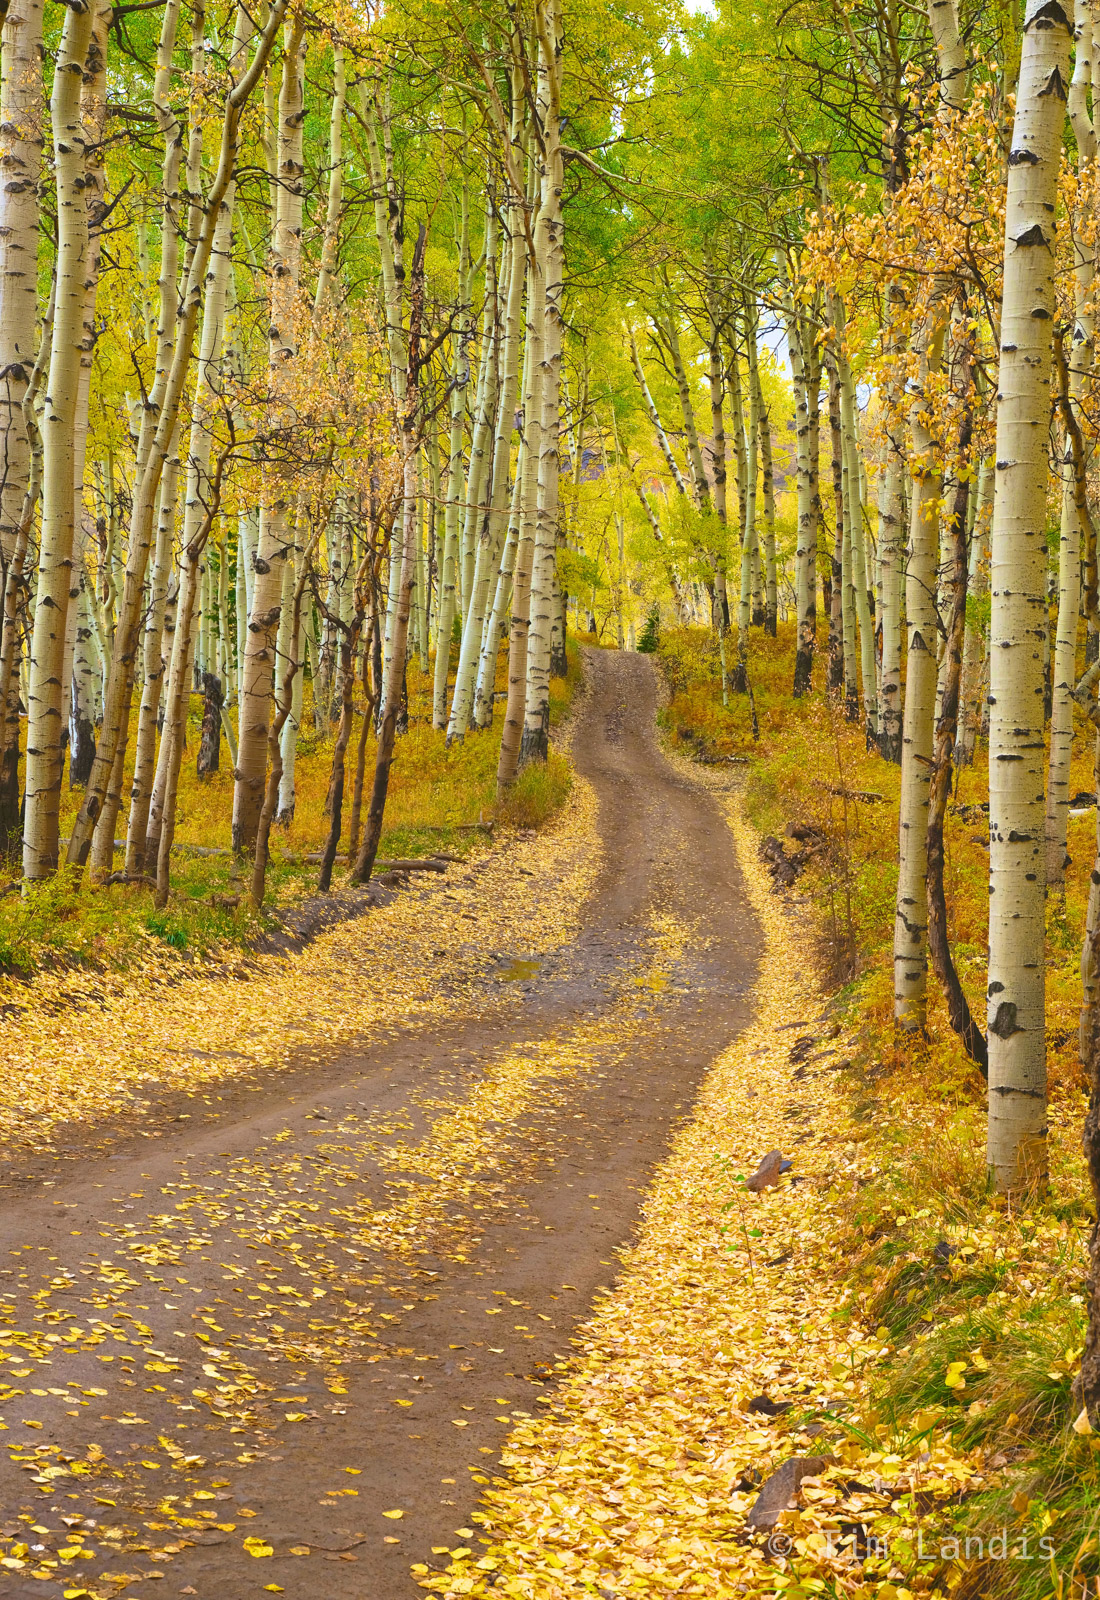 Country roads, scattered aspen leaves, take me home, yellow and green, photo